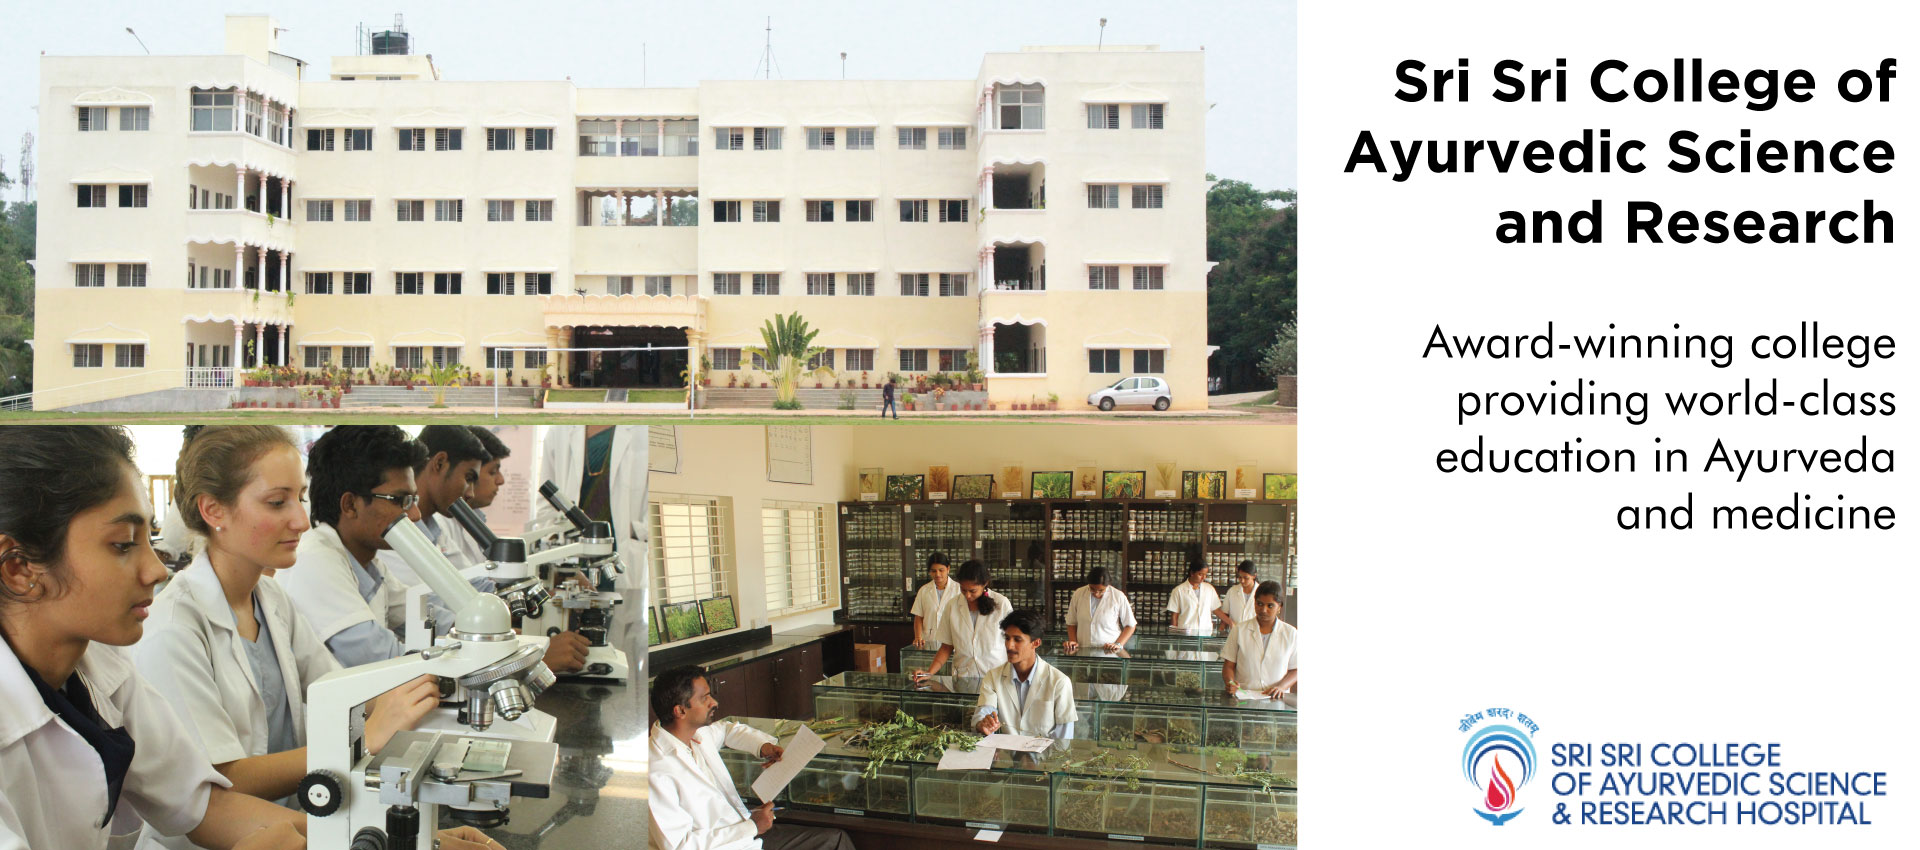 Sri Sri College of Ayurvedic Science and Research